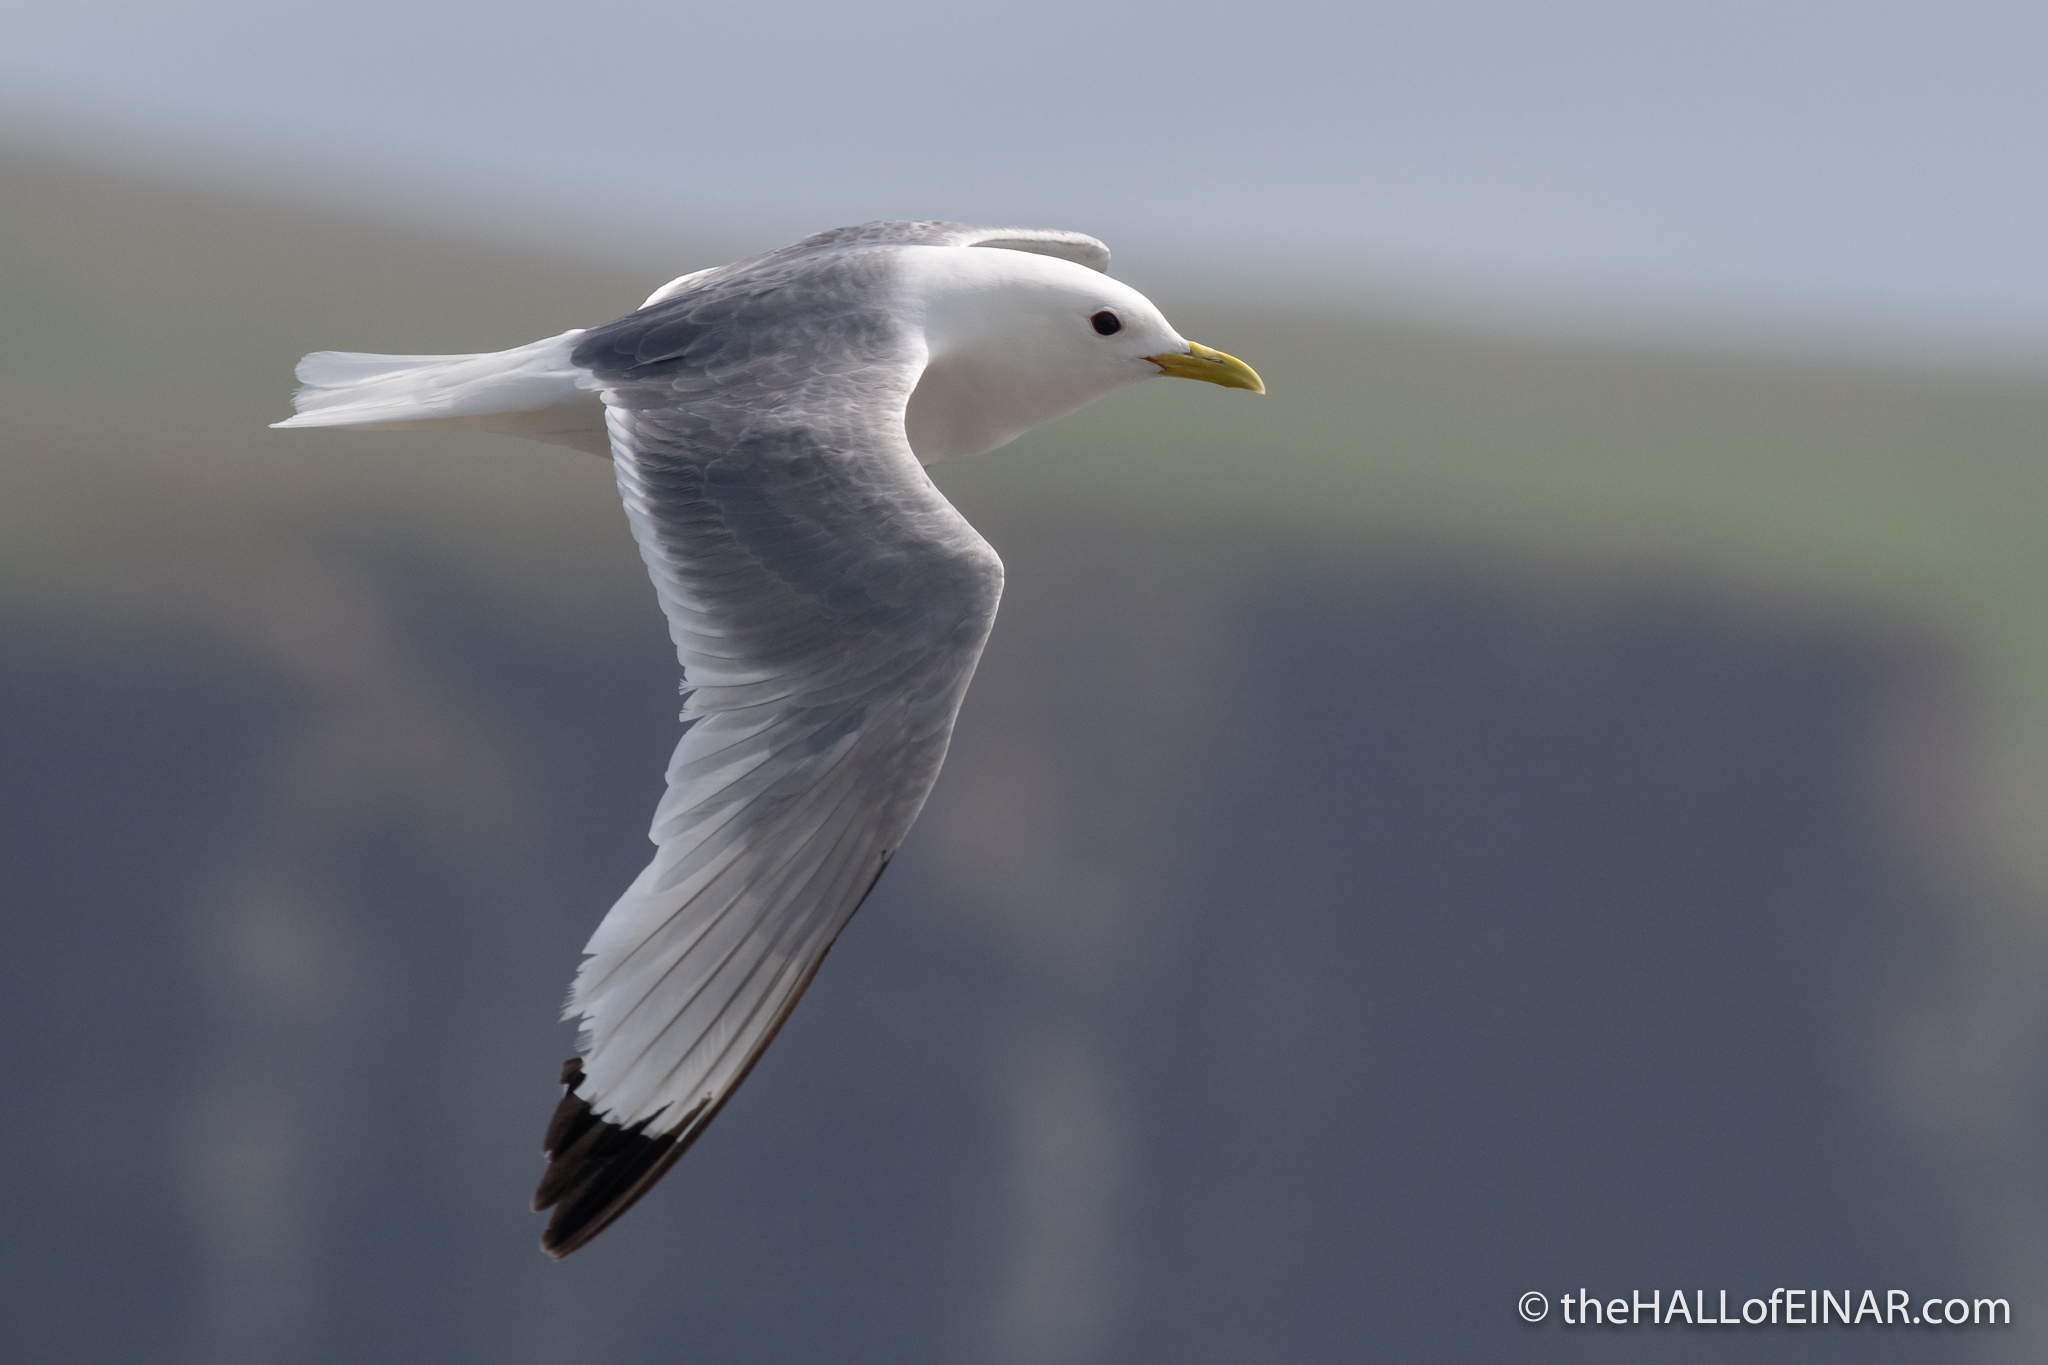 Kittiwake - The Hall of Einar - photograph (c) David Bailey (not the)